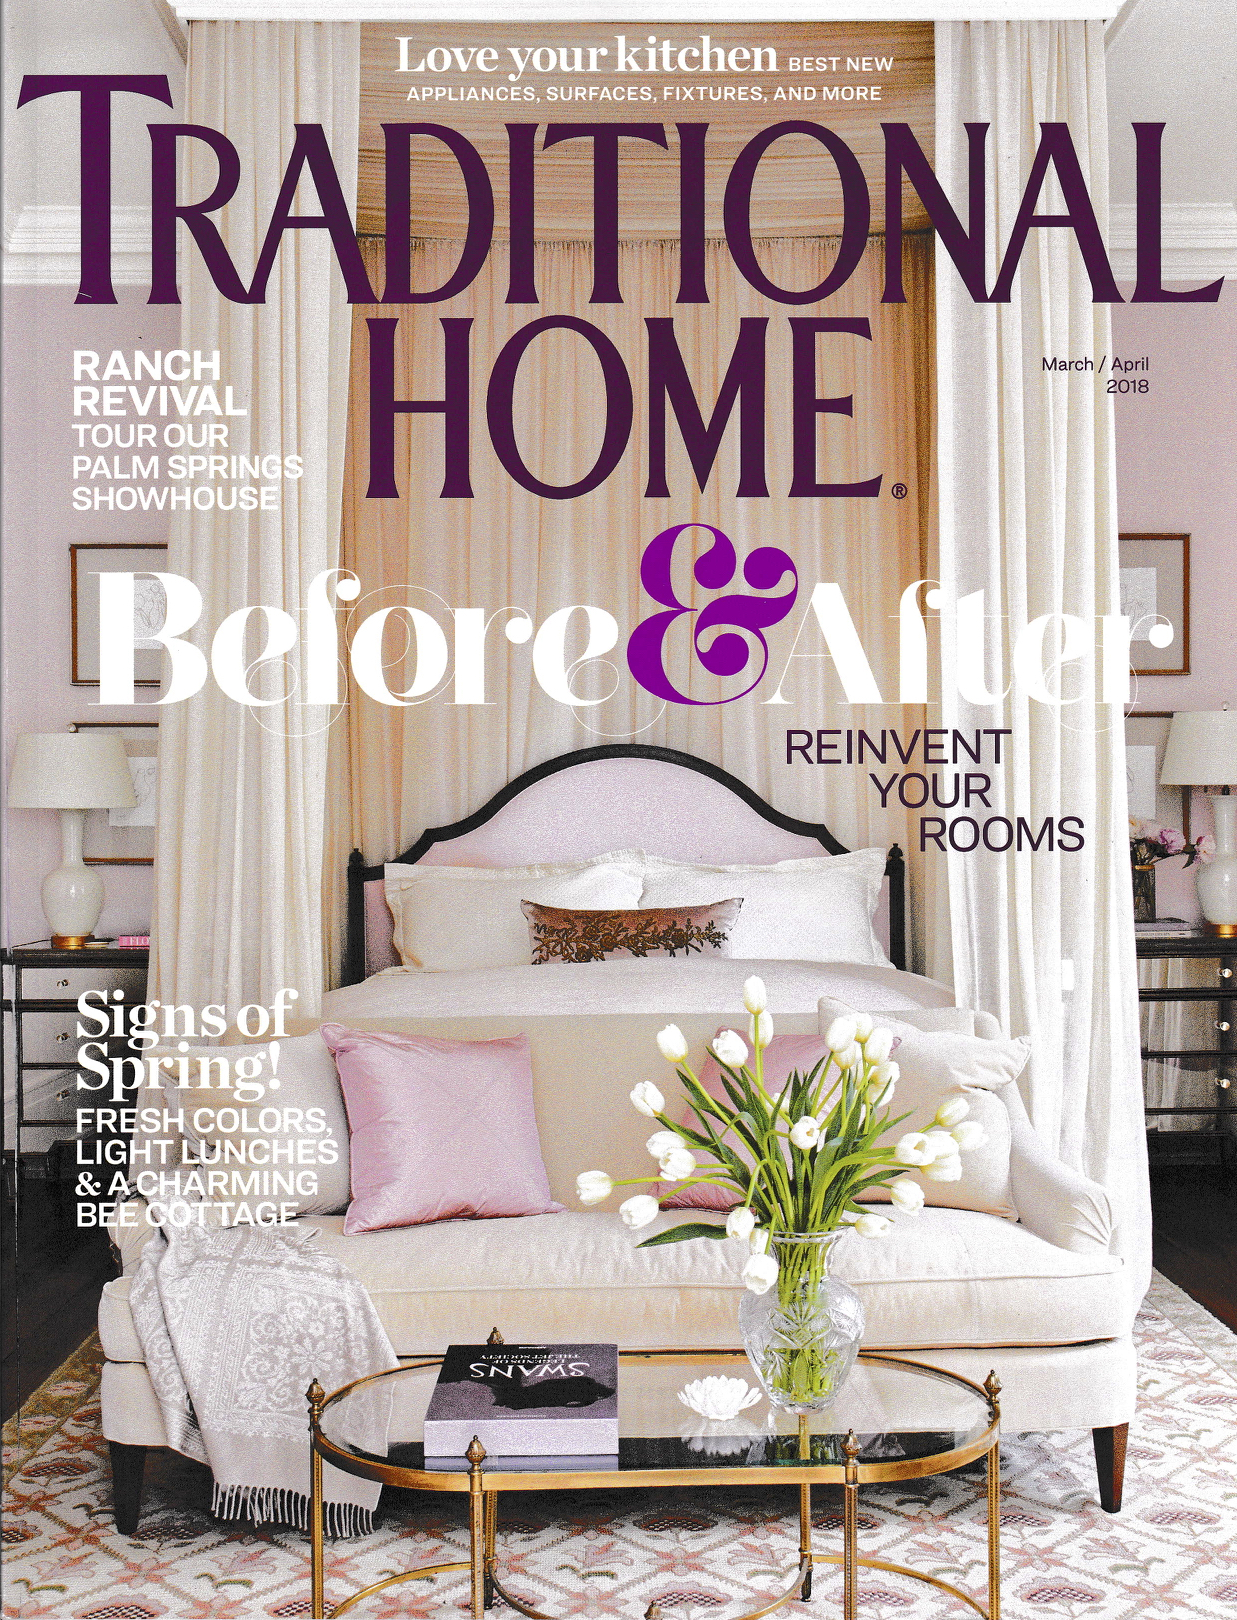 MB_TraditionalHome_cover_Mar:April18.jpg